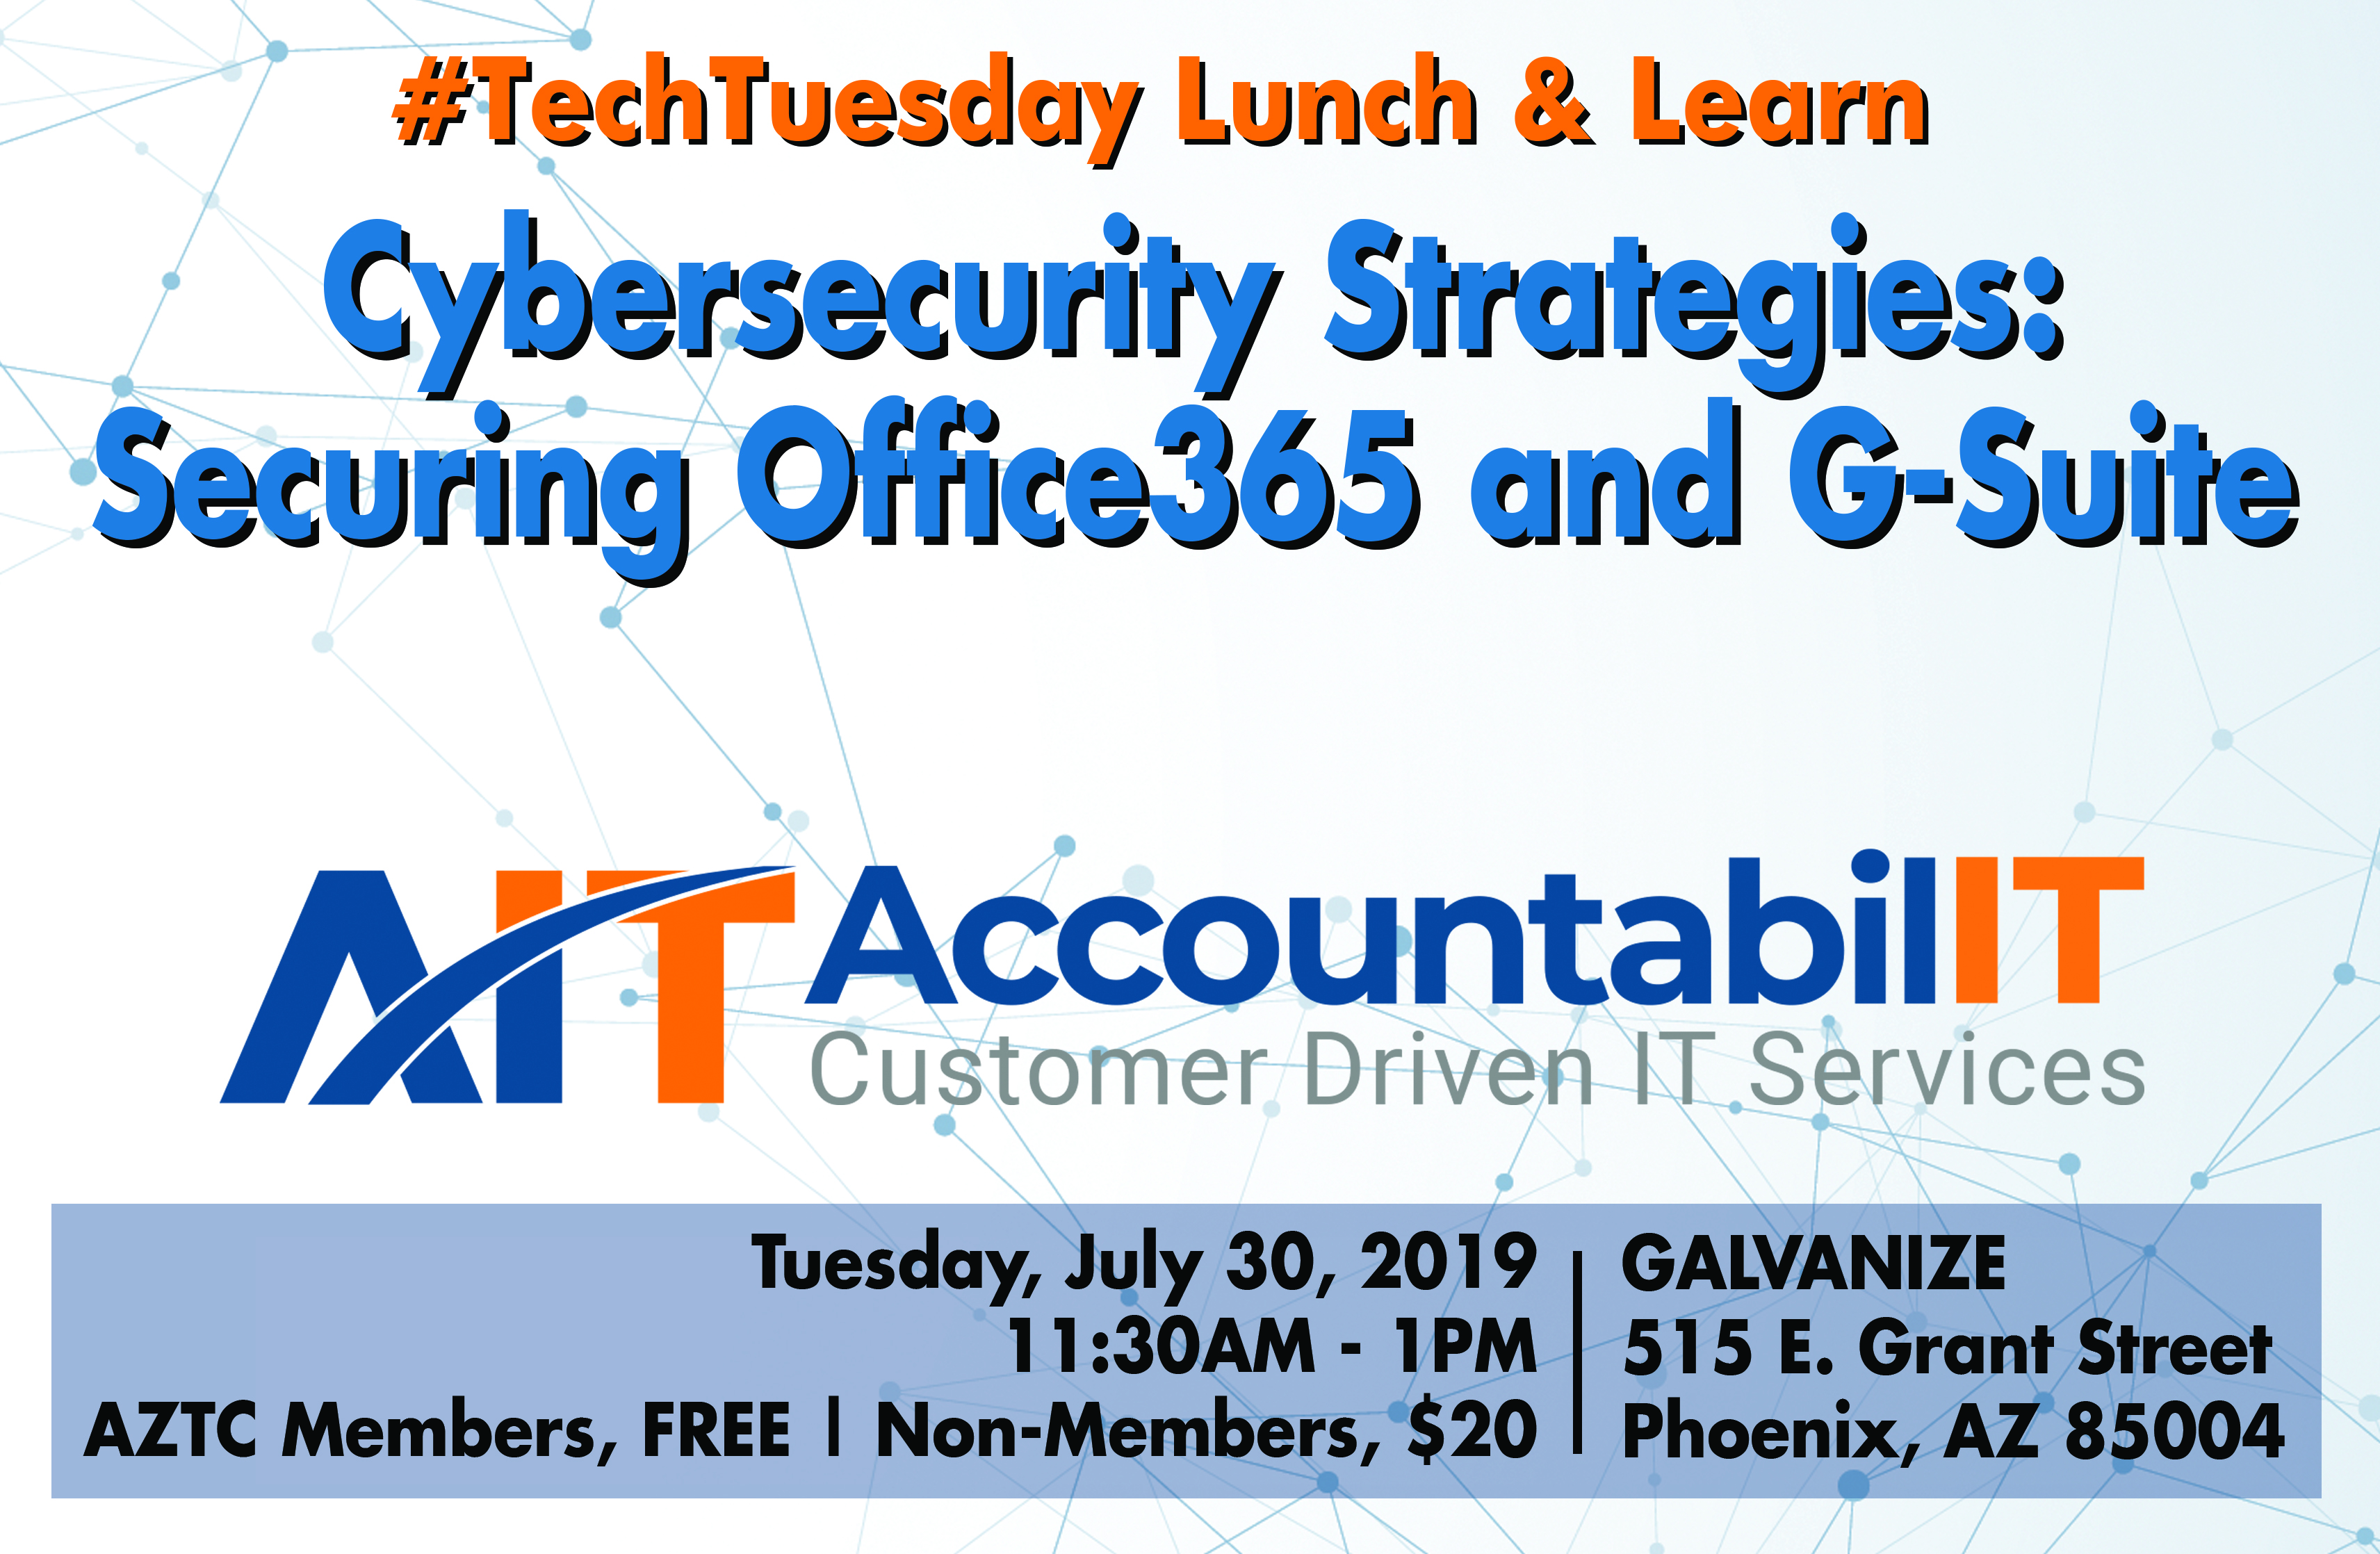 Cybersecurity Strategies: Securing Office365 and G-Suite